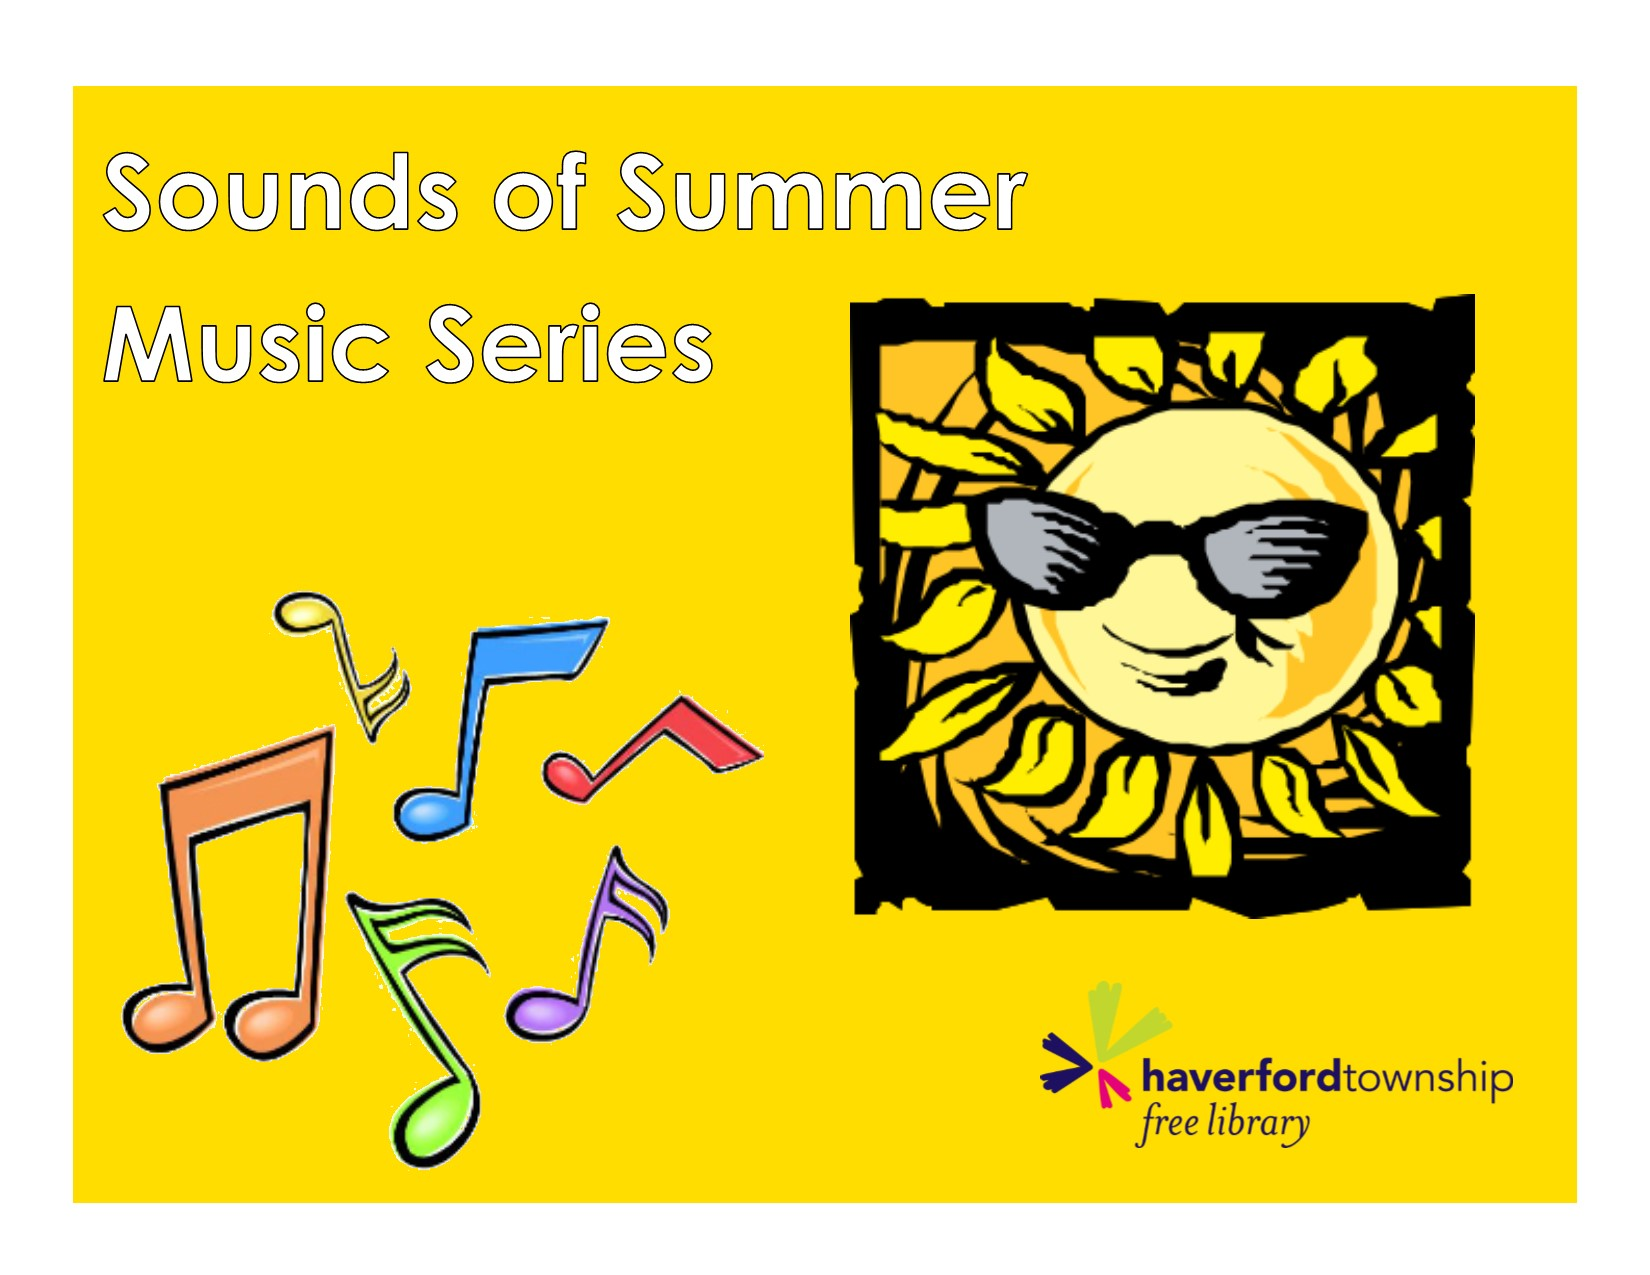 Sounds of Summer Music Series • Haverford Township Free Library